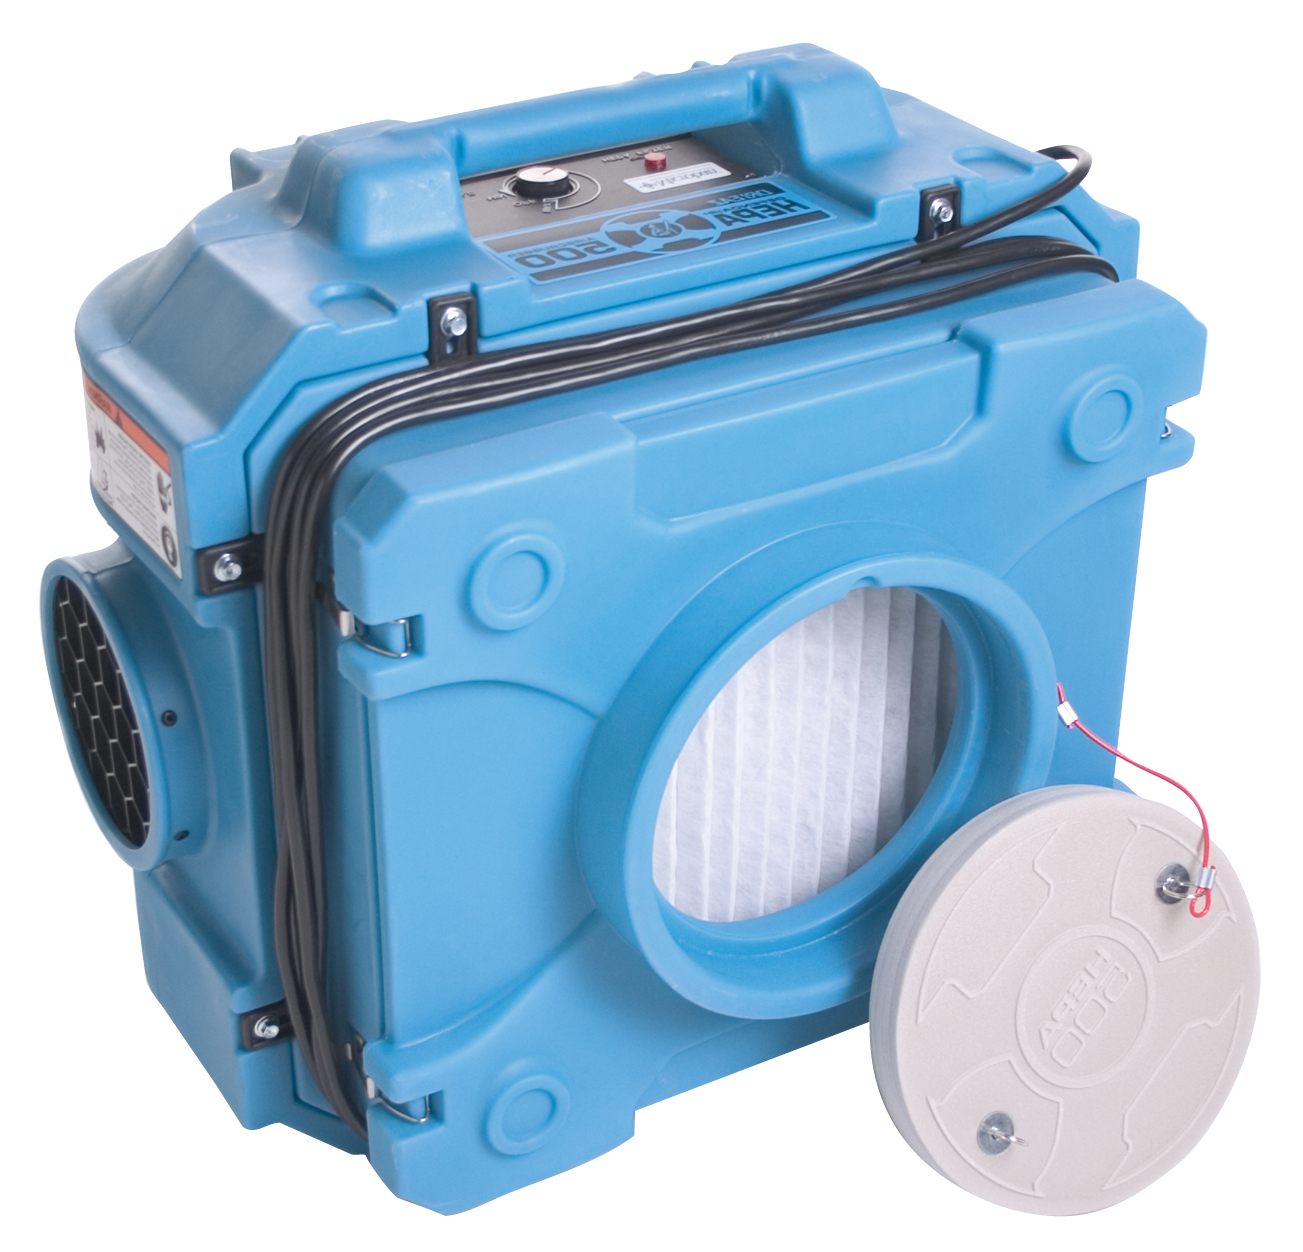 Hepa Air Scrubber : Hepa air filter and scrubber rental purification